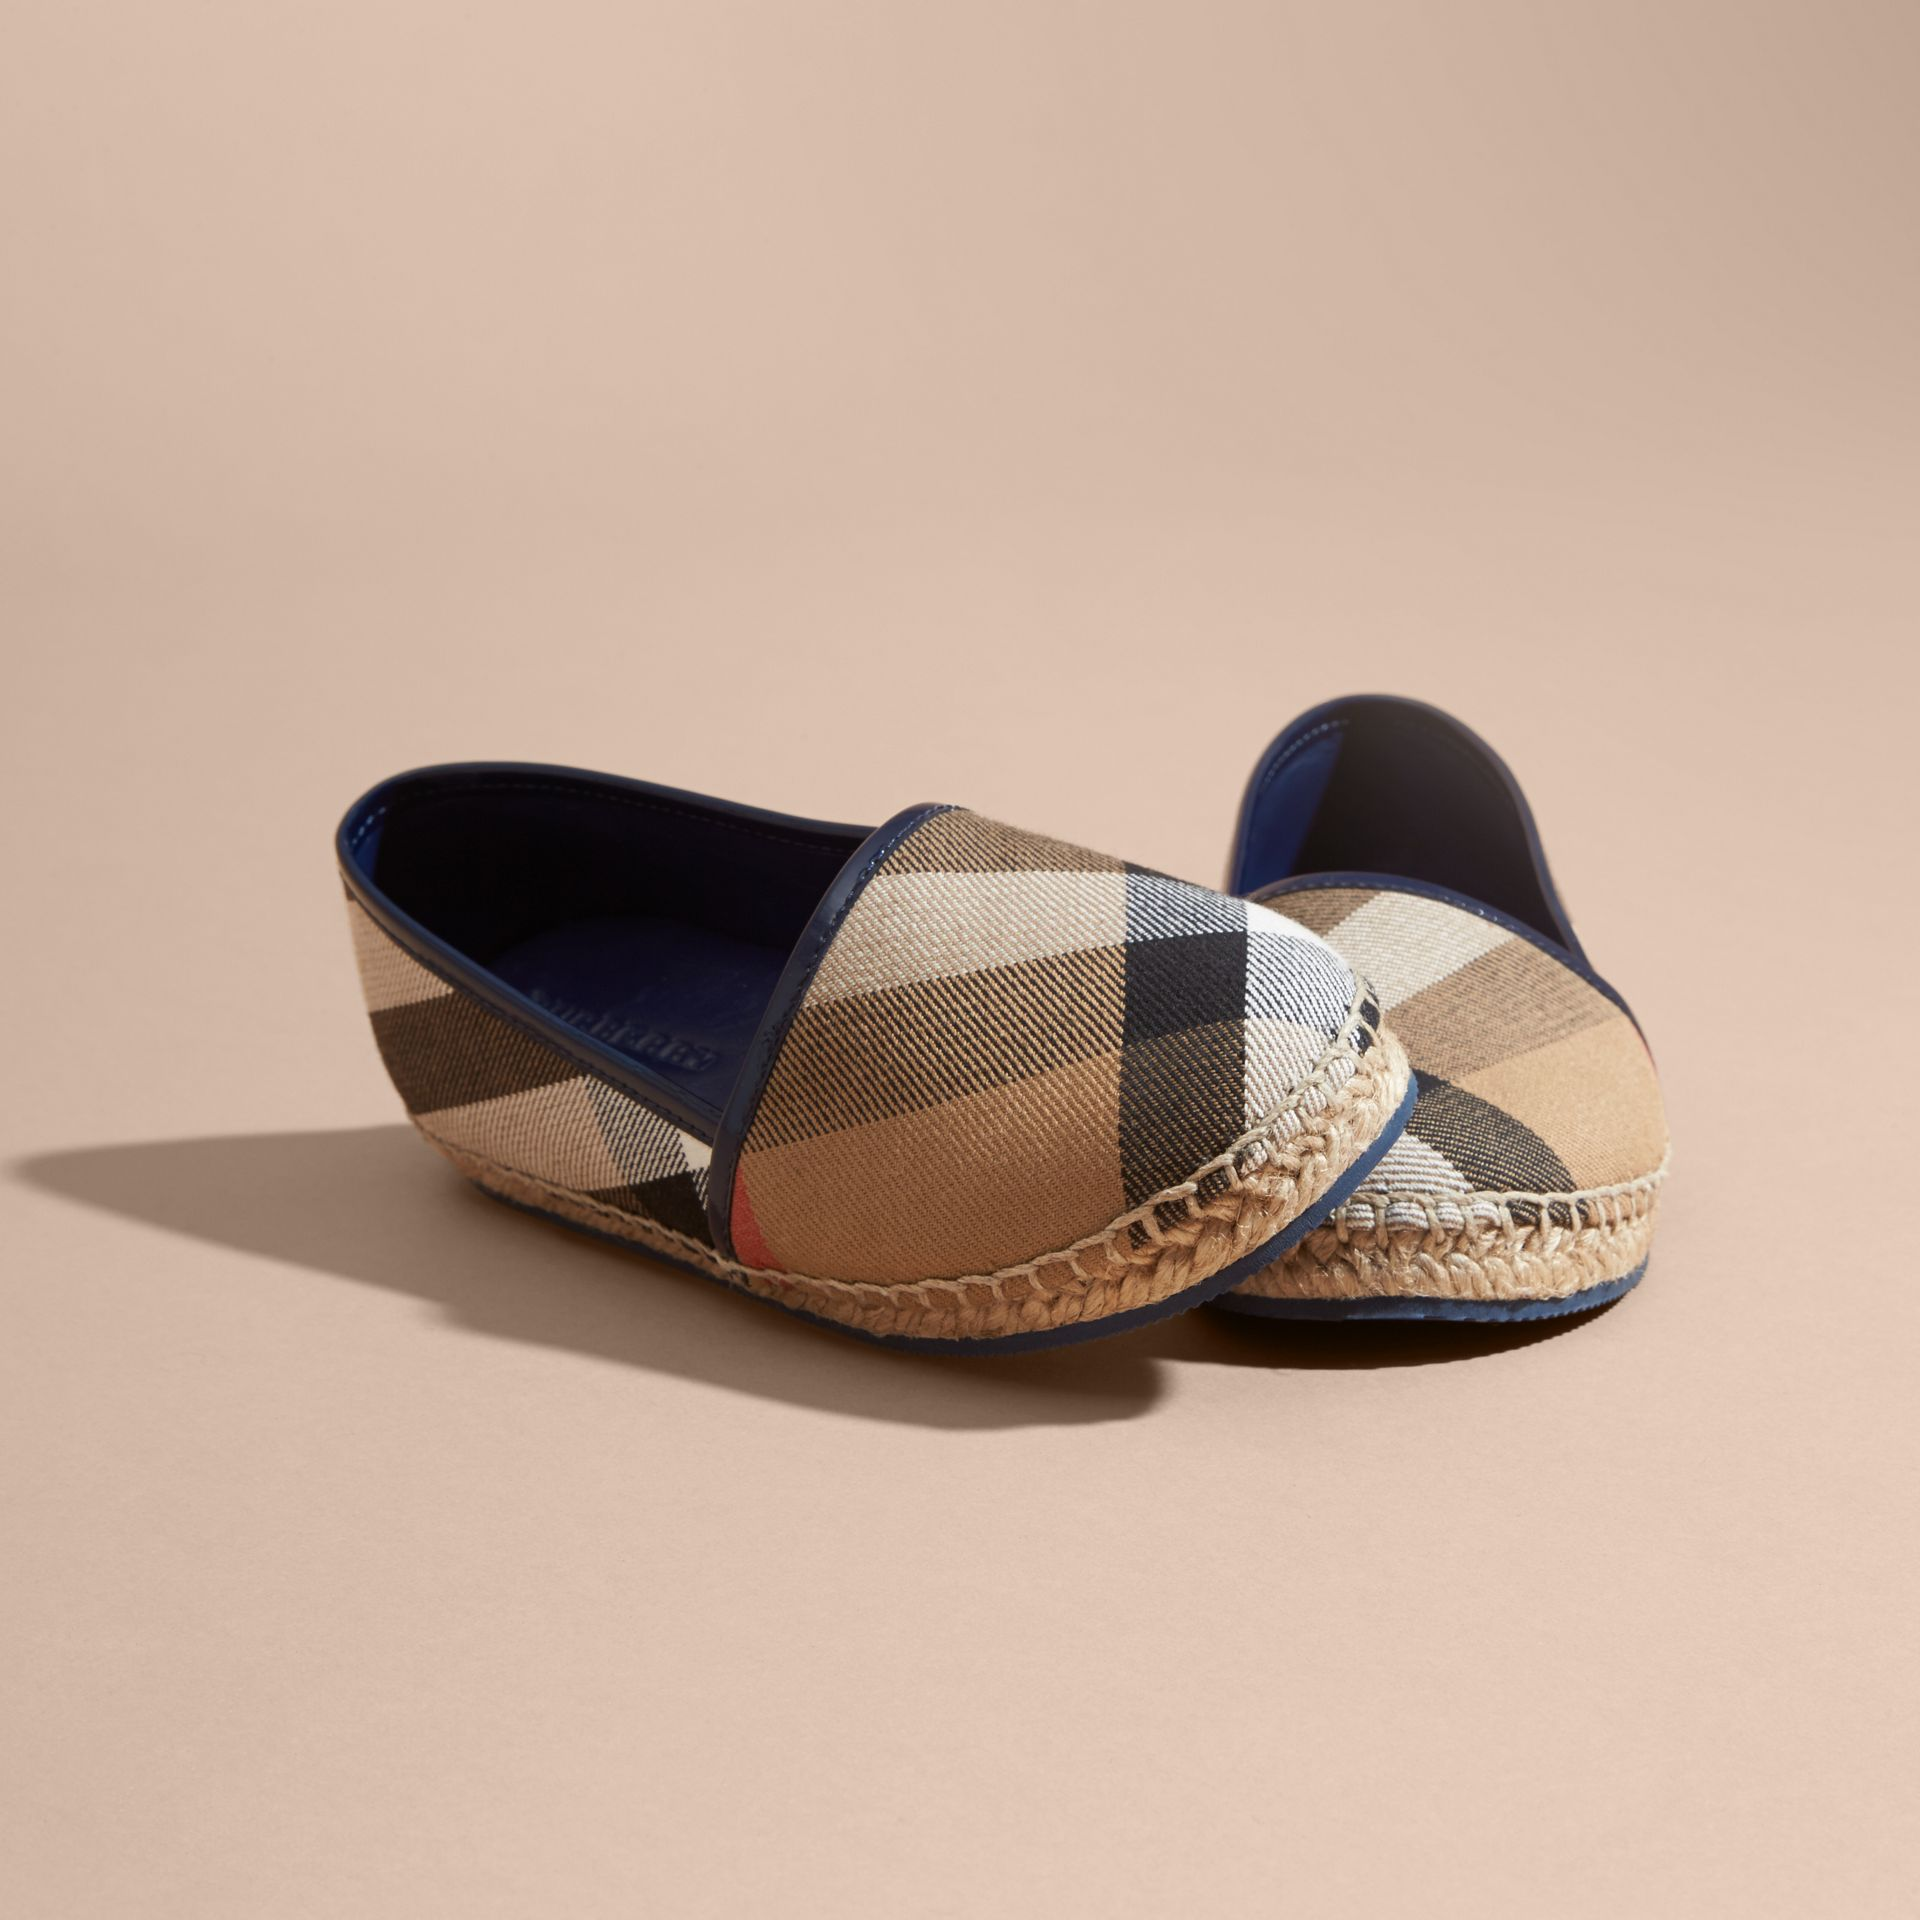 House Check Cotton Canvas Espadrilles Dark Sapphire - gallery image 3